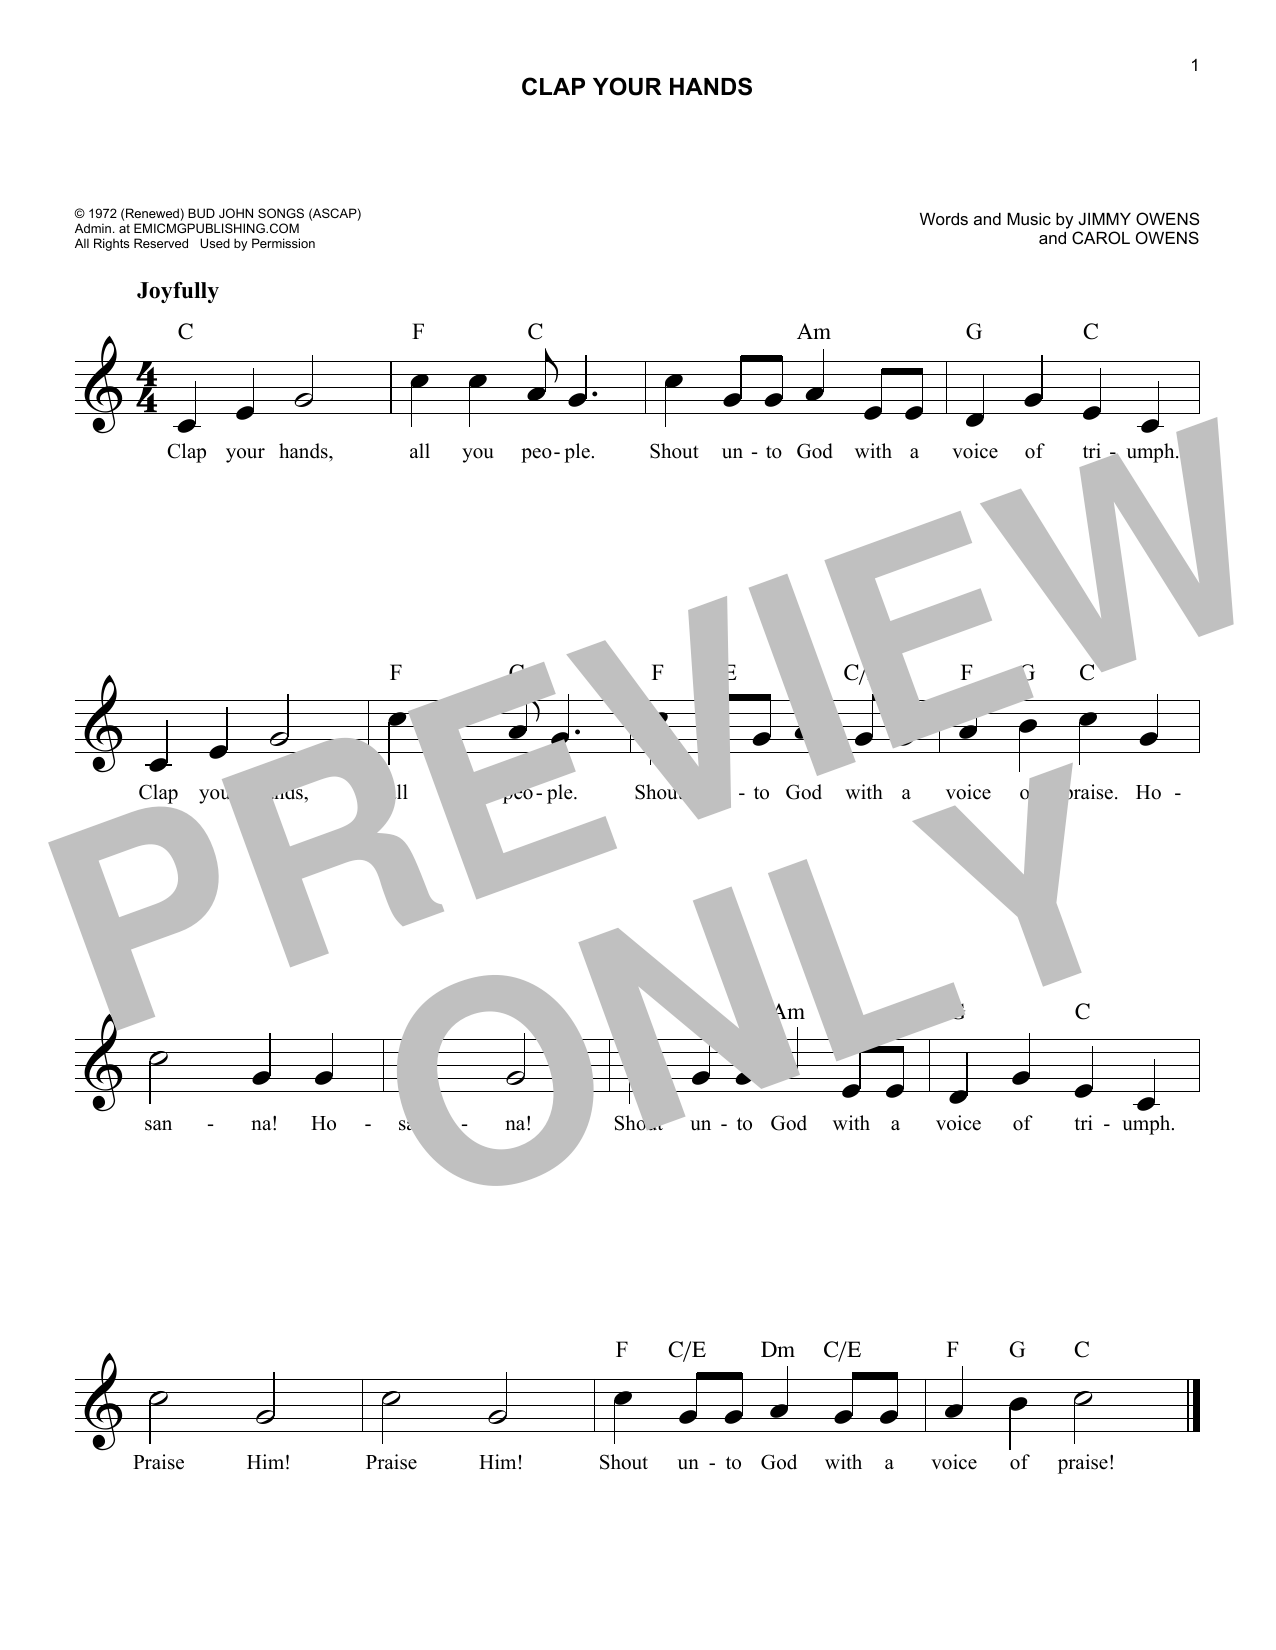 Carol Owens Clap Your Hands sheet music notes and chords. Download Printable PDF.